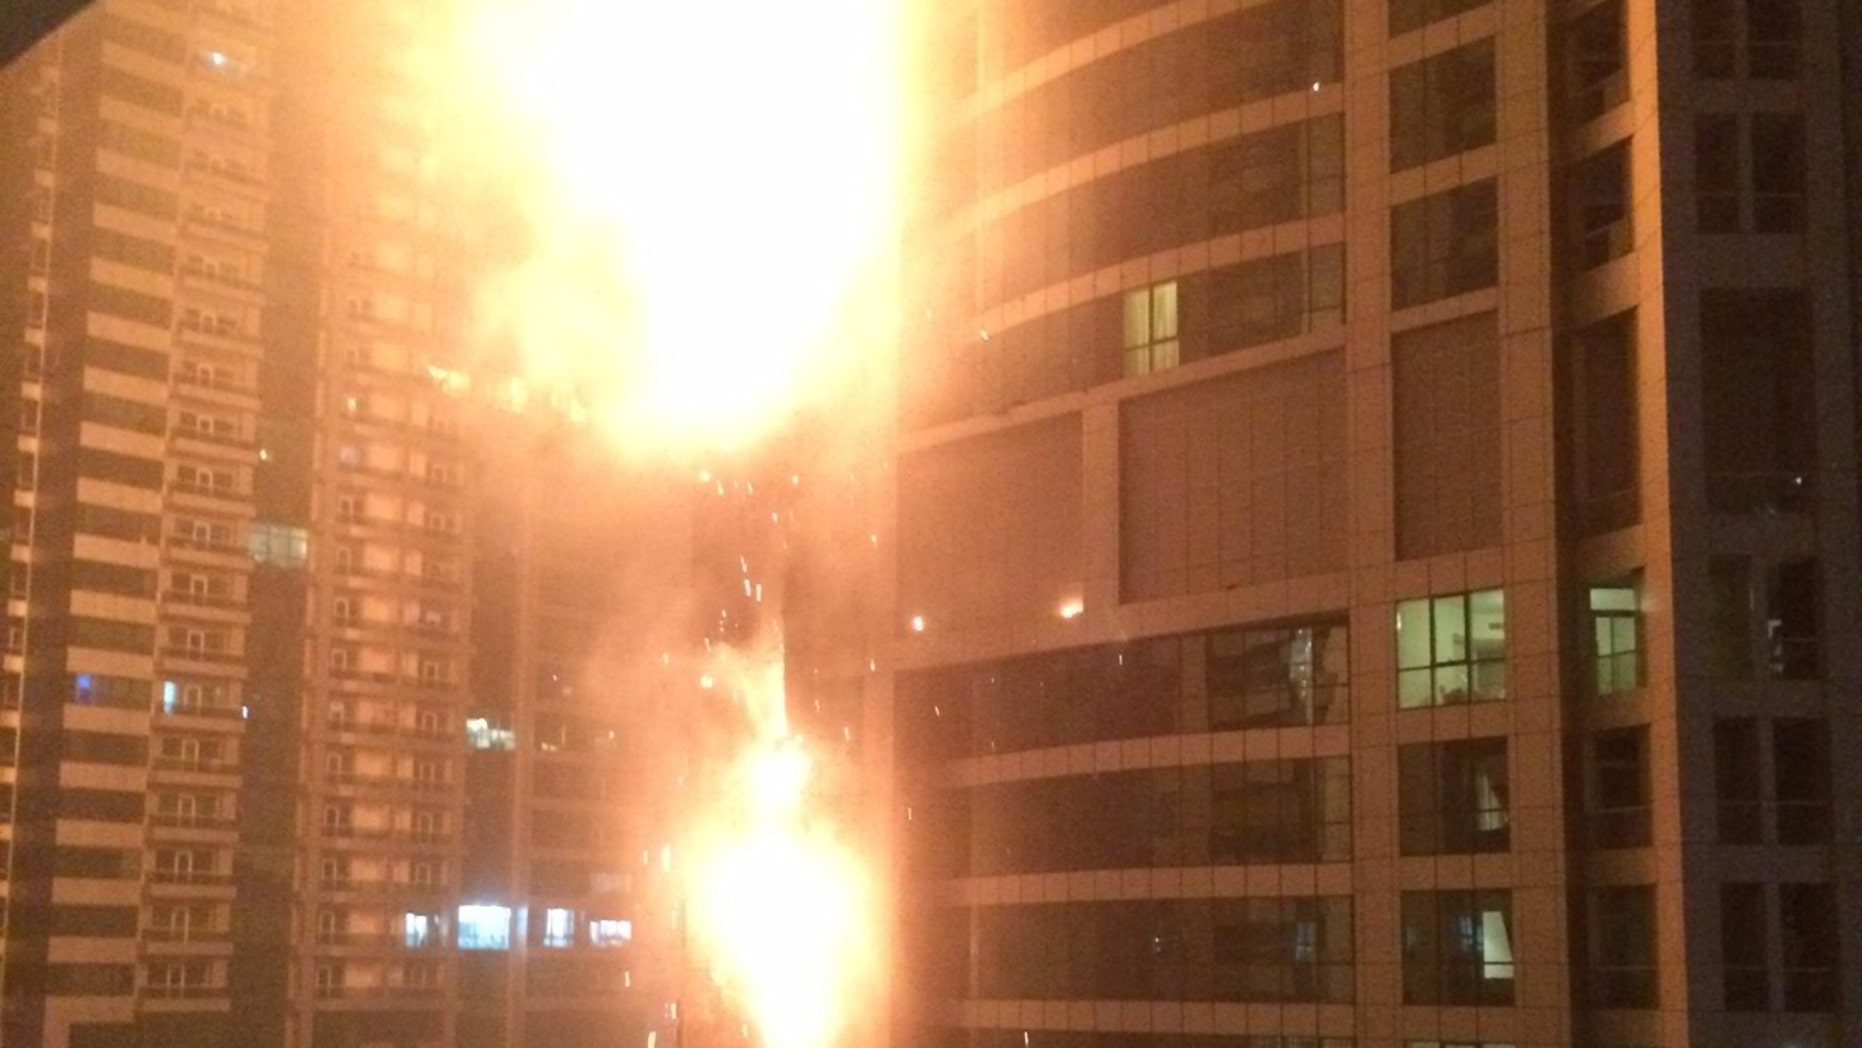 Feb. 21, 2015: This photo provided by Rhea Saran shows flames coming from a high rise tower in Dubai's marina district.